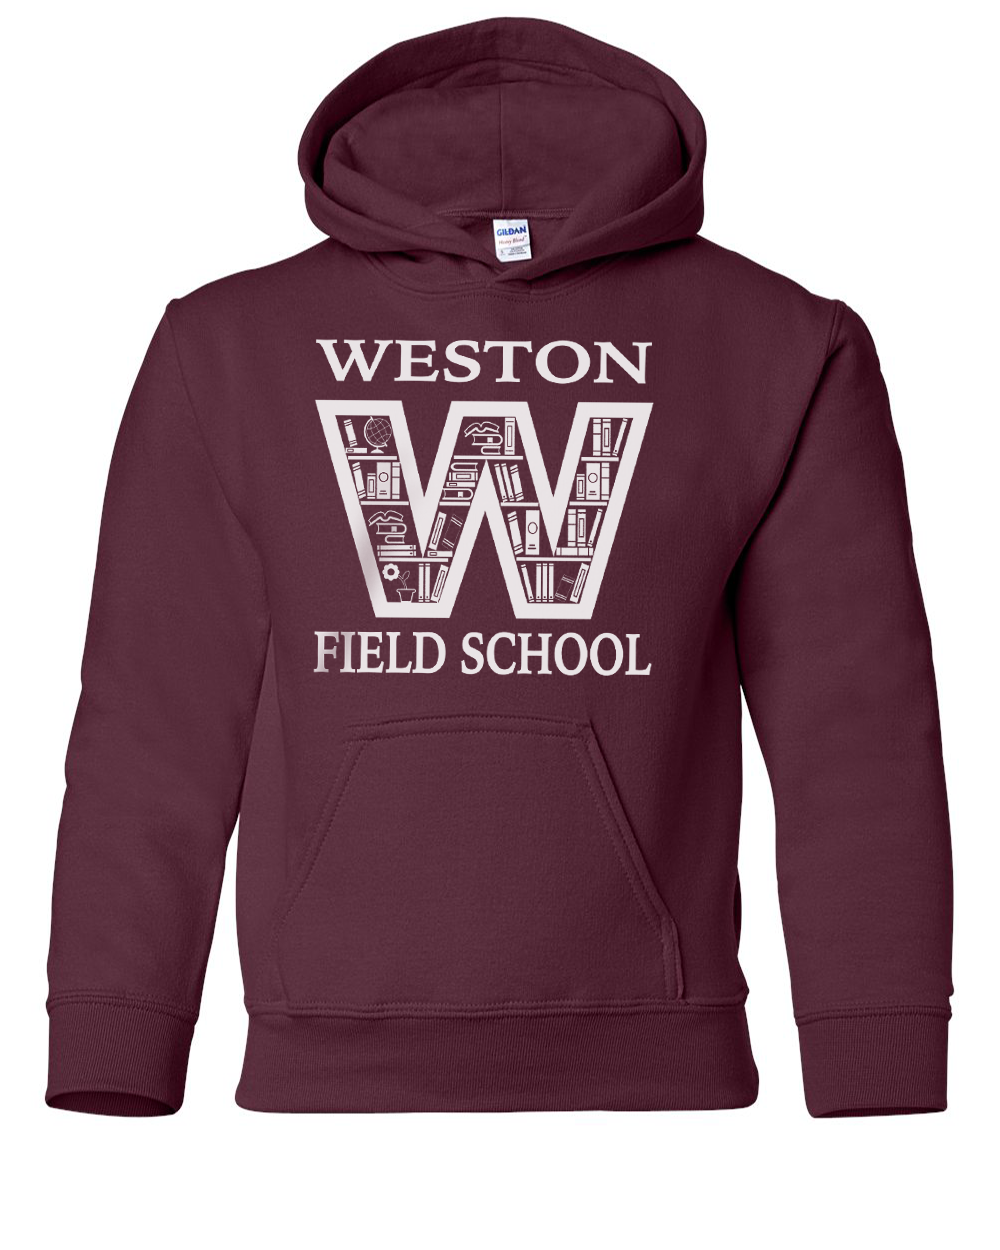 Weston Field School Youth & Adult Pull Over Hoodie